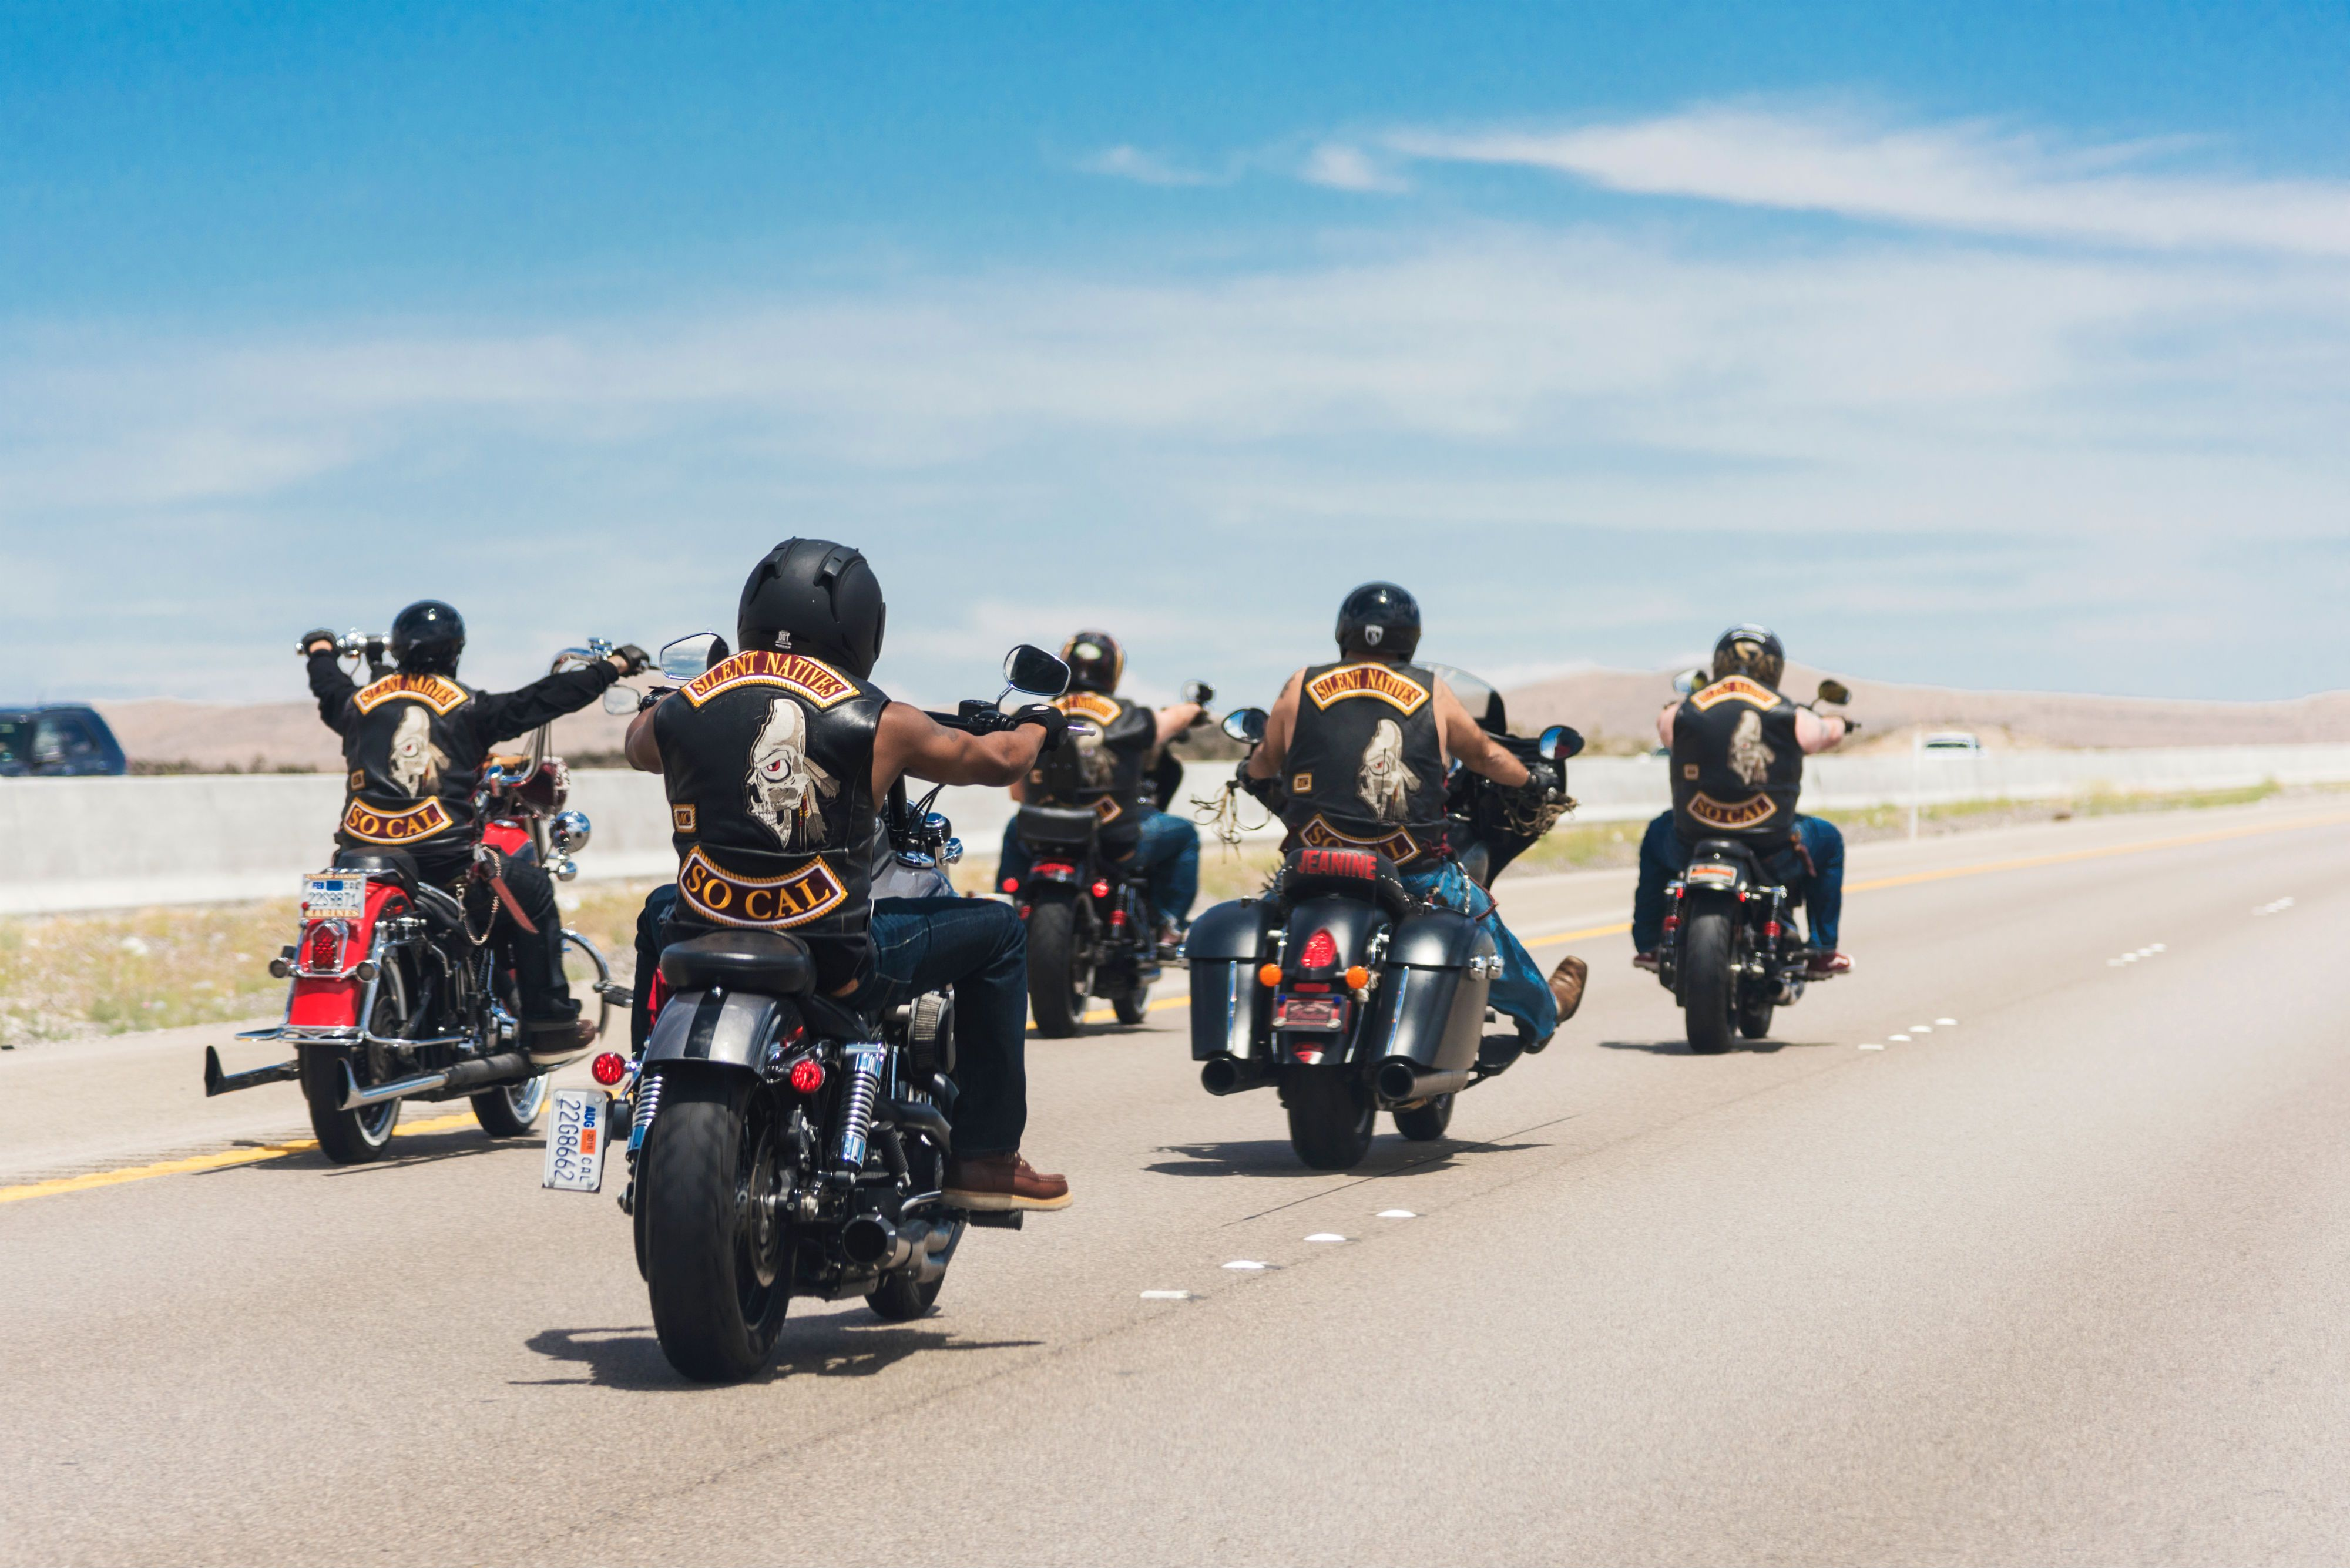 Where Are Those Motorcyclists Going?